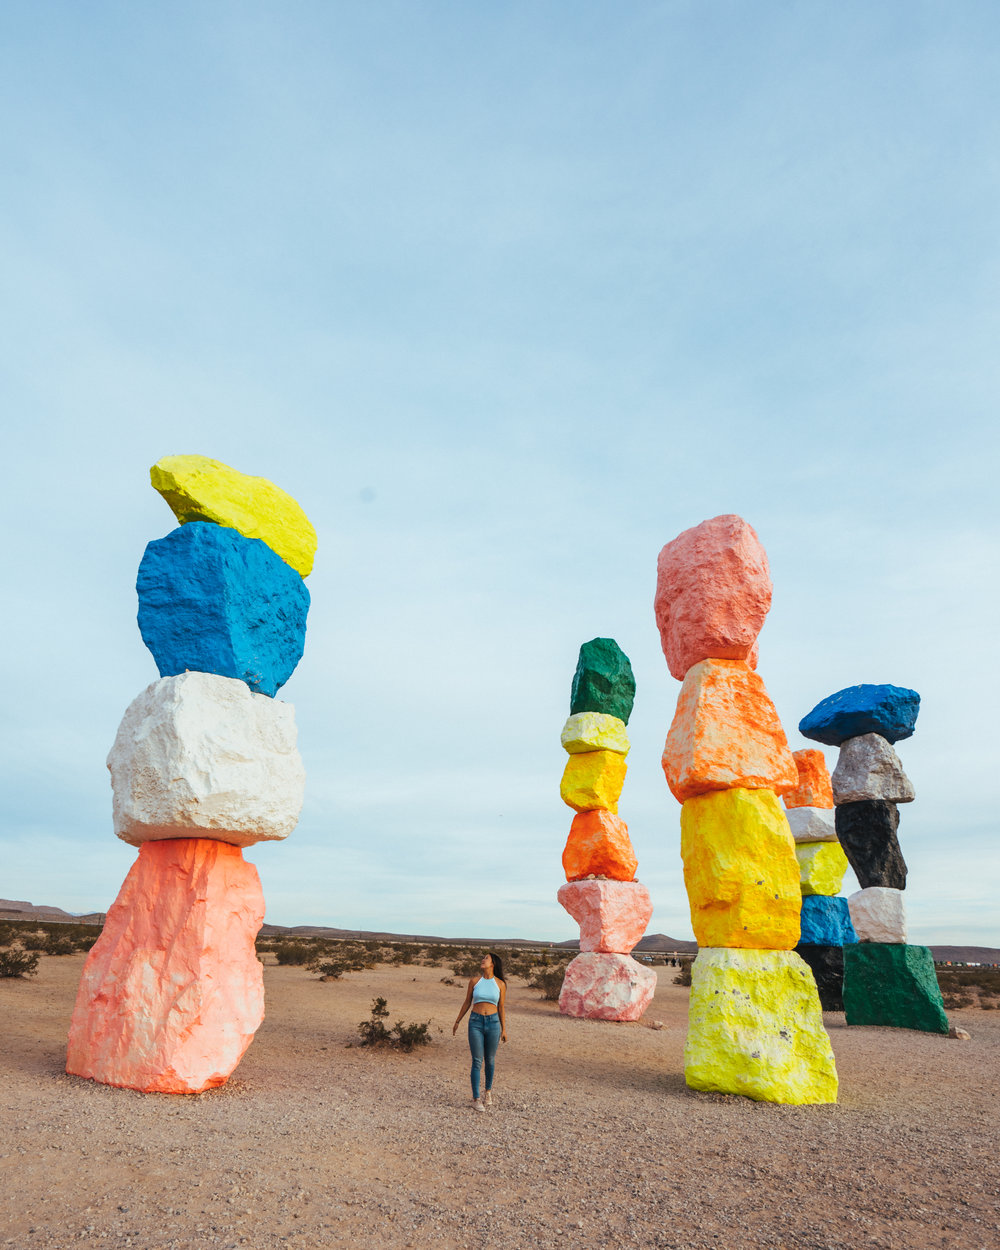 Visit places like the Seven Magic Mountains with an RV!